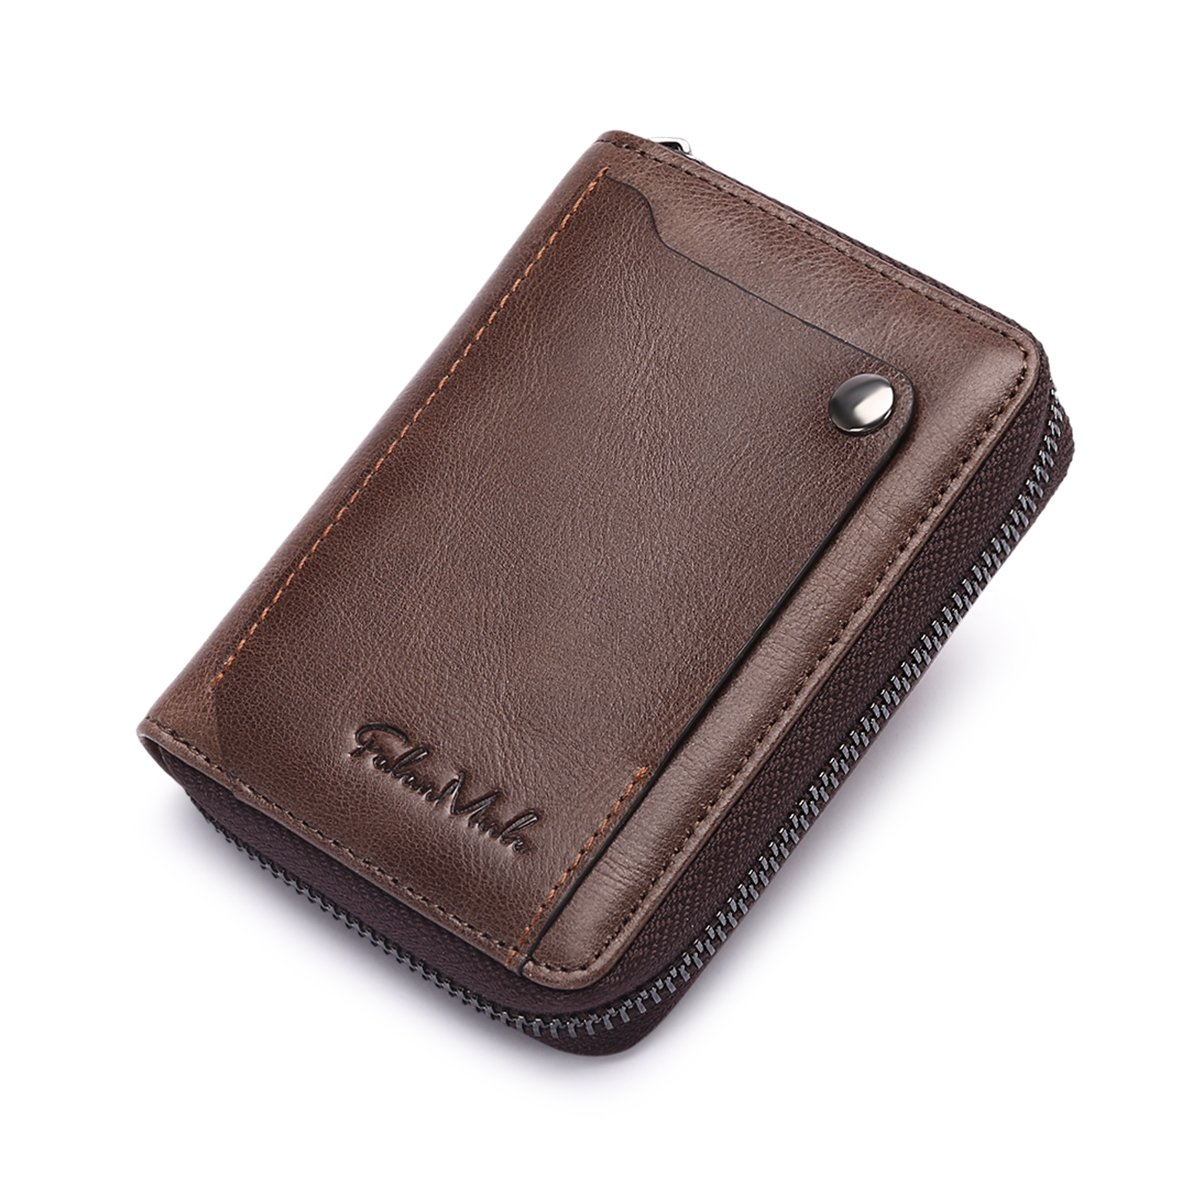 Slim Bifold RFID Blocking Men Wallet Leather Front Pocket Compact Design Zipper Closure Minimalist